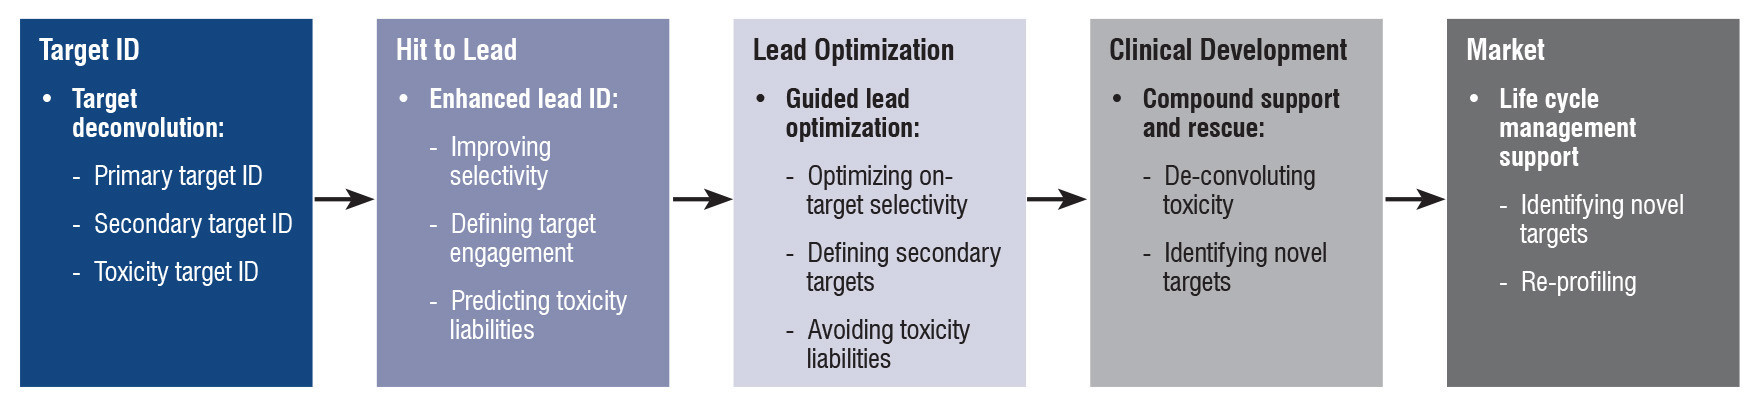 Charles River offers drug discovery services in target identification, hit to lead, lead optimization and hit identification.